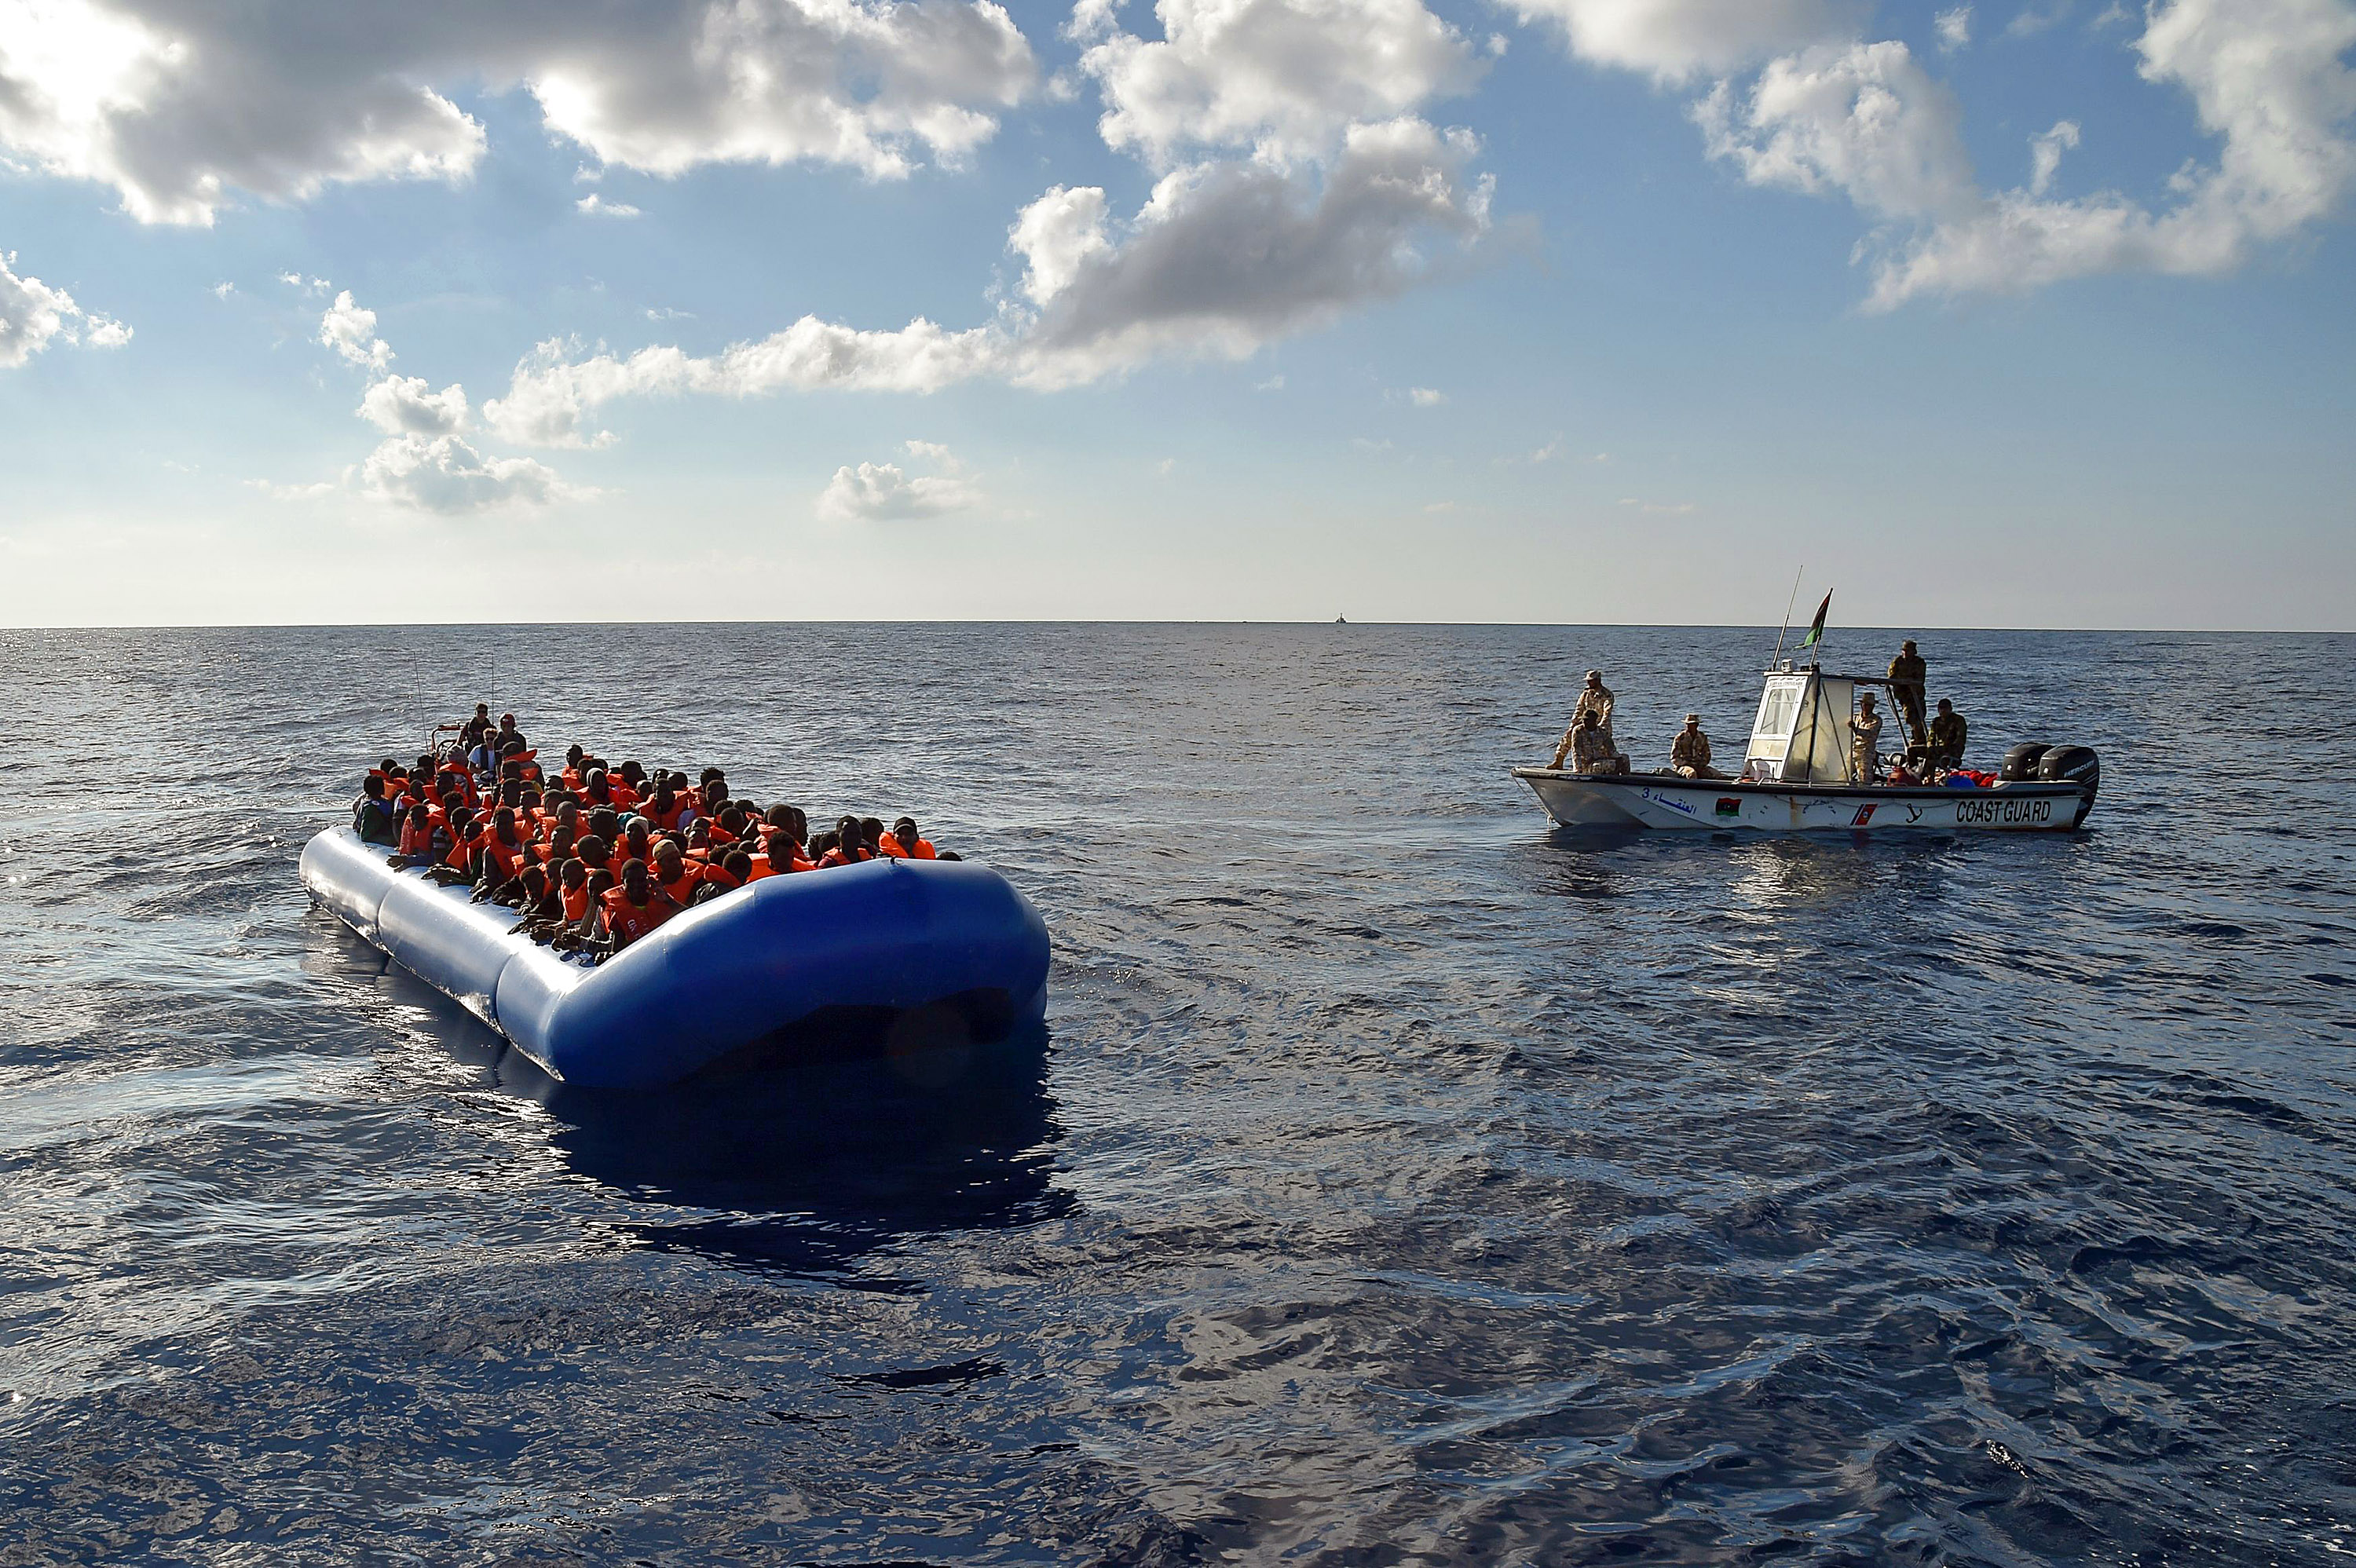 """TOPSHOT - Migrants and refugees sit on a rubber boat as the Libyan coastguards patrol, during a rescue operation of the Topaz Responder, a rescue ship run by Maltese NGO """"Moas"""" and the Italian Red Cross, on November 4, 2016 off th Libyan coast.Around 750 migrants were rescued across the Mediterranean Thursday by the Italian coast guard, a Frontex ship, a Save The Children vessel, German NGO Jugend Rettet's Iuventa and two boats run by the Malta-based MOAS (Migrant Offshore Aid Station). But at least 110 migrants are feared drowned after they were forced at gunpoint to set sail from Libya, while many more may have died in a separate shipwreck, survivors said. / AFP / ANDREAS SOLARO (Photo credit should read ANDREAS SOLARO/AFP/Getty Images)"""